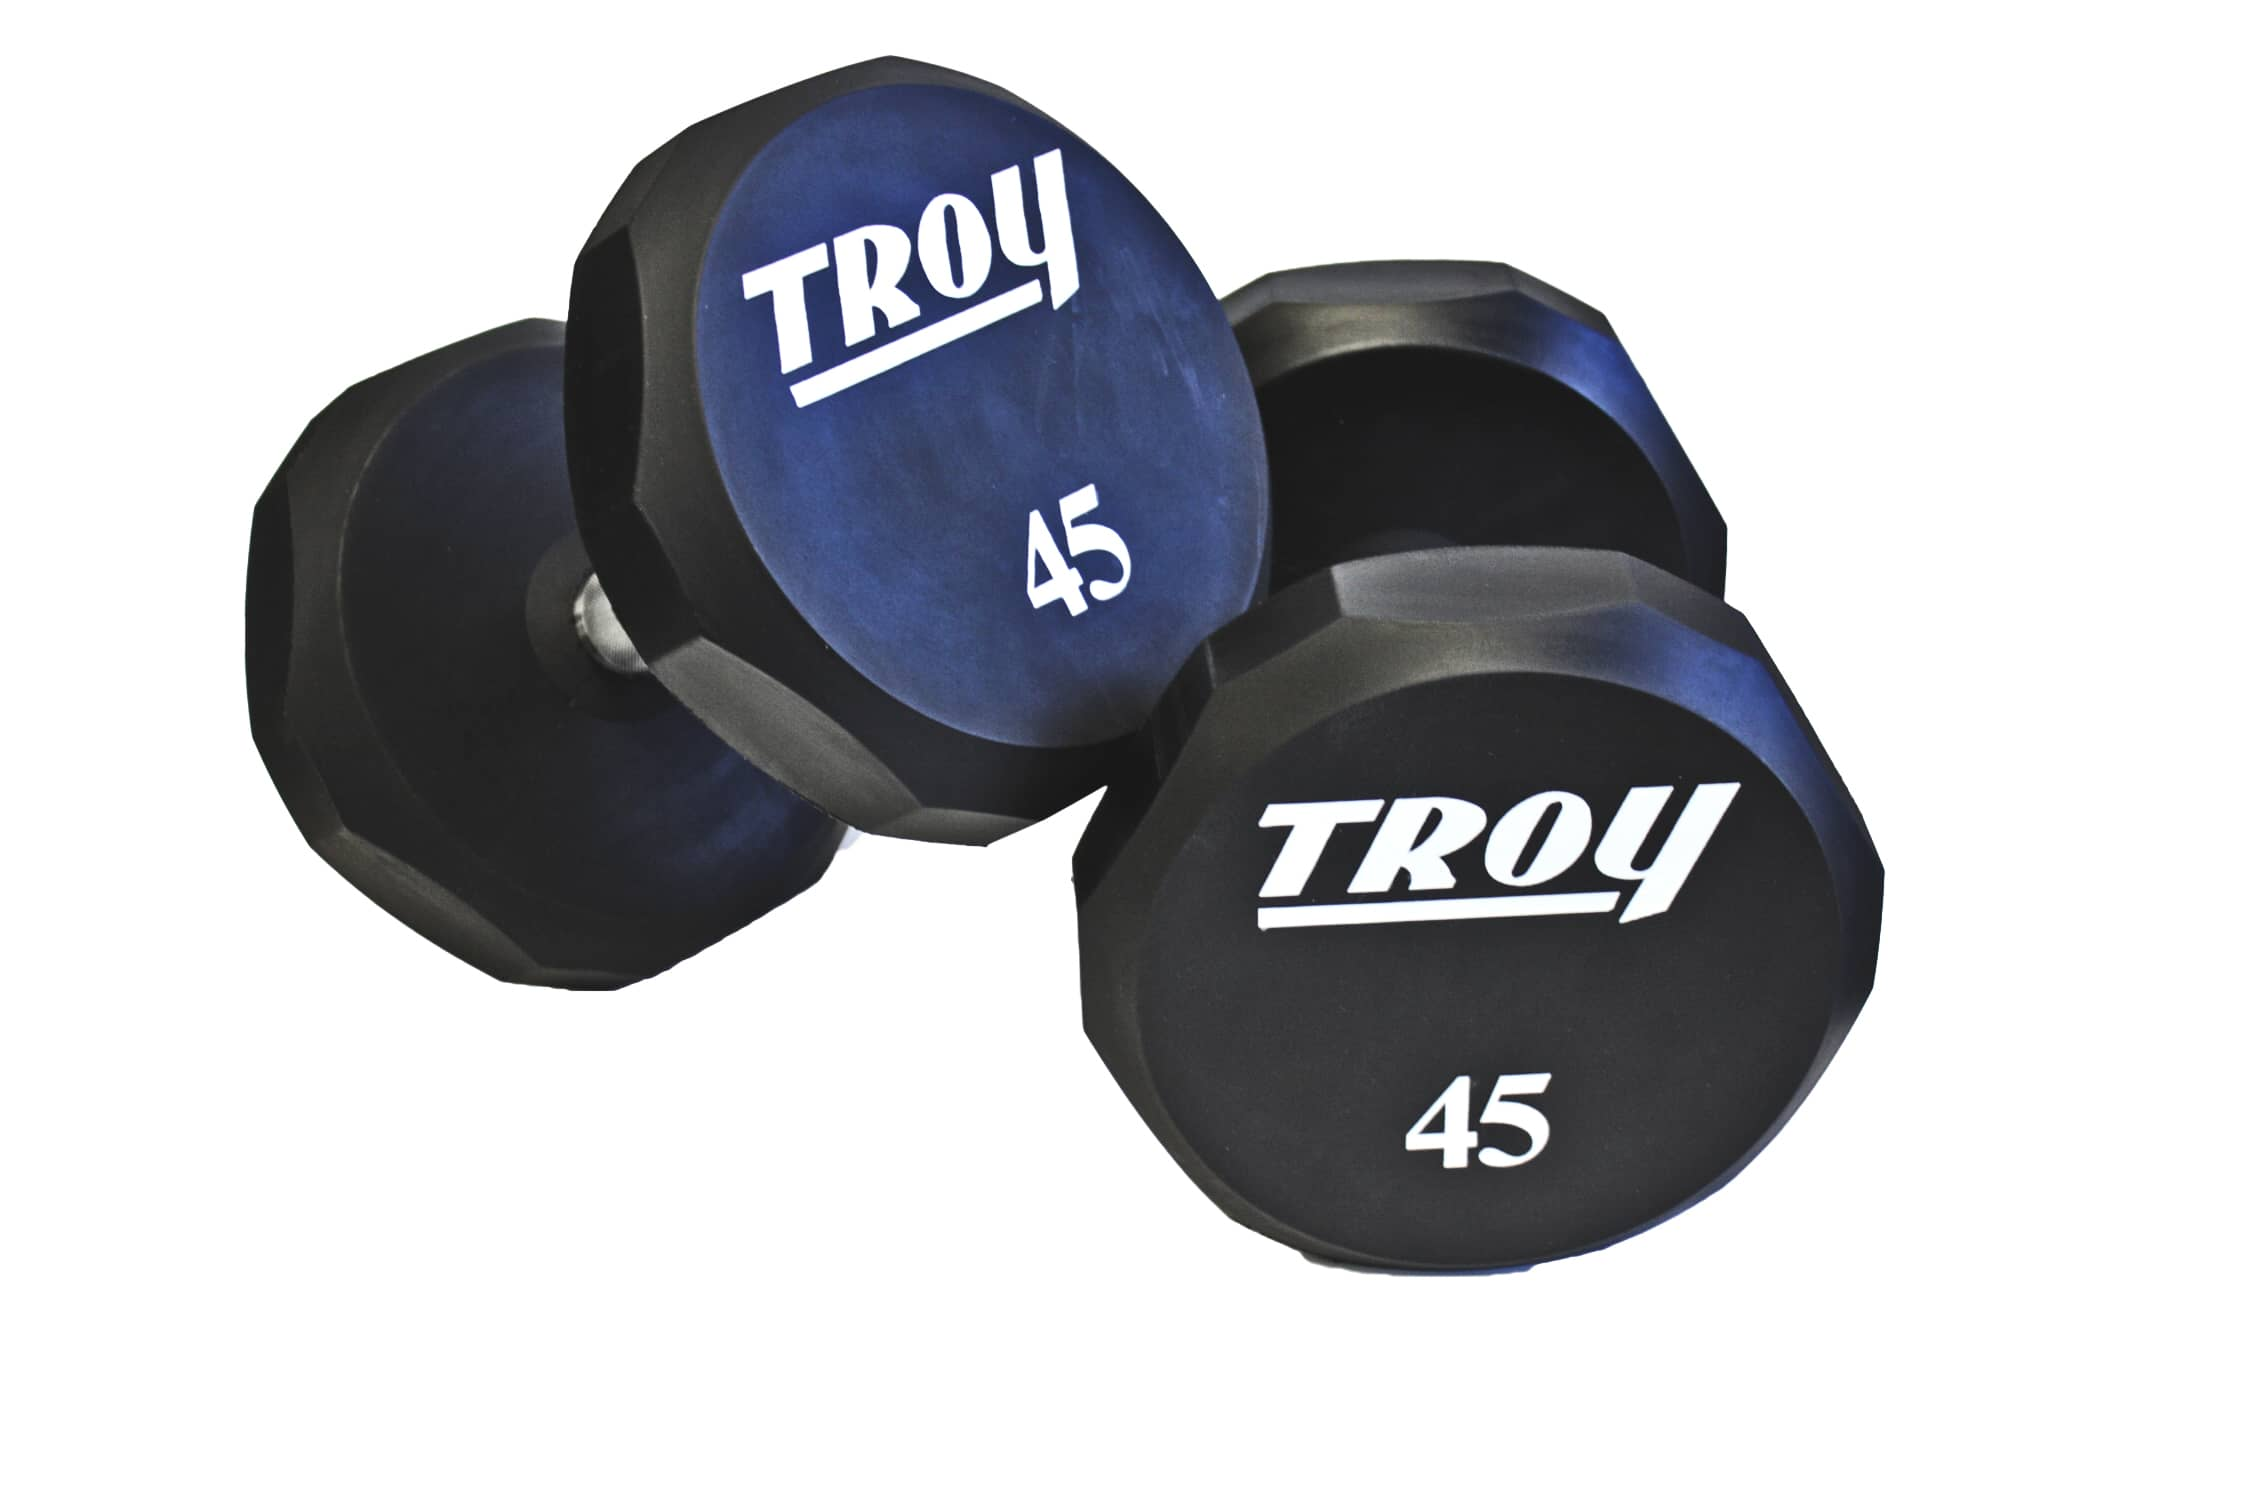 Troy Urethane Dumbbell Weight Set 80 - 100 lb. Pairs - Flat 12-Sided Head (Commercial Gym Quality) by Troy Barbell